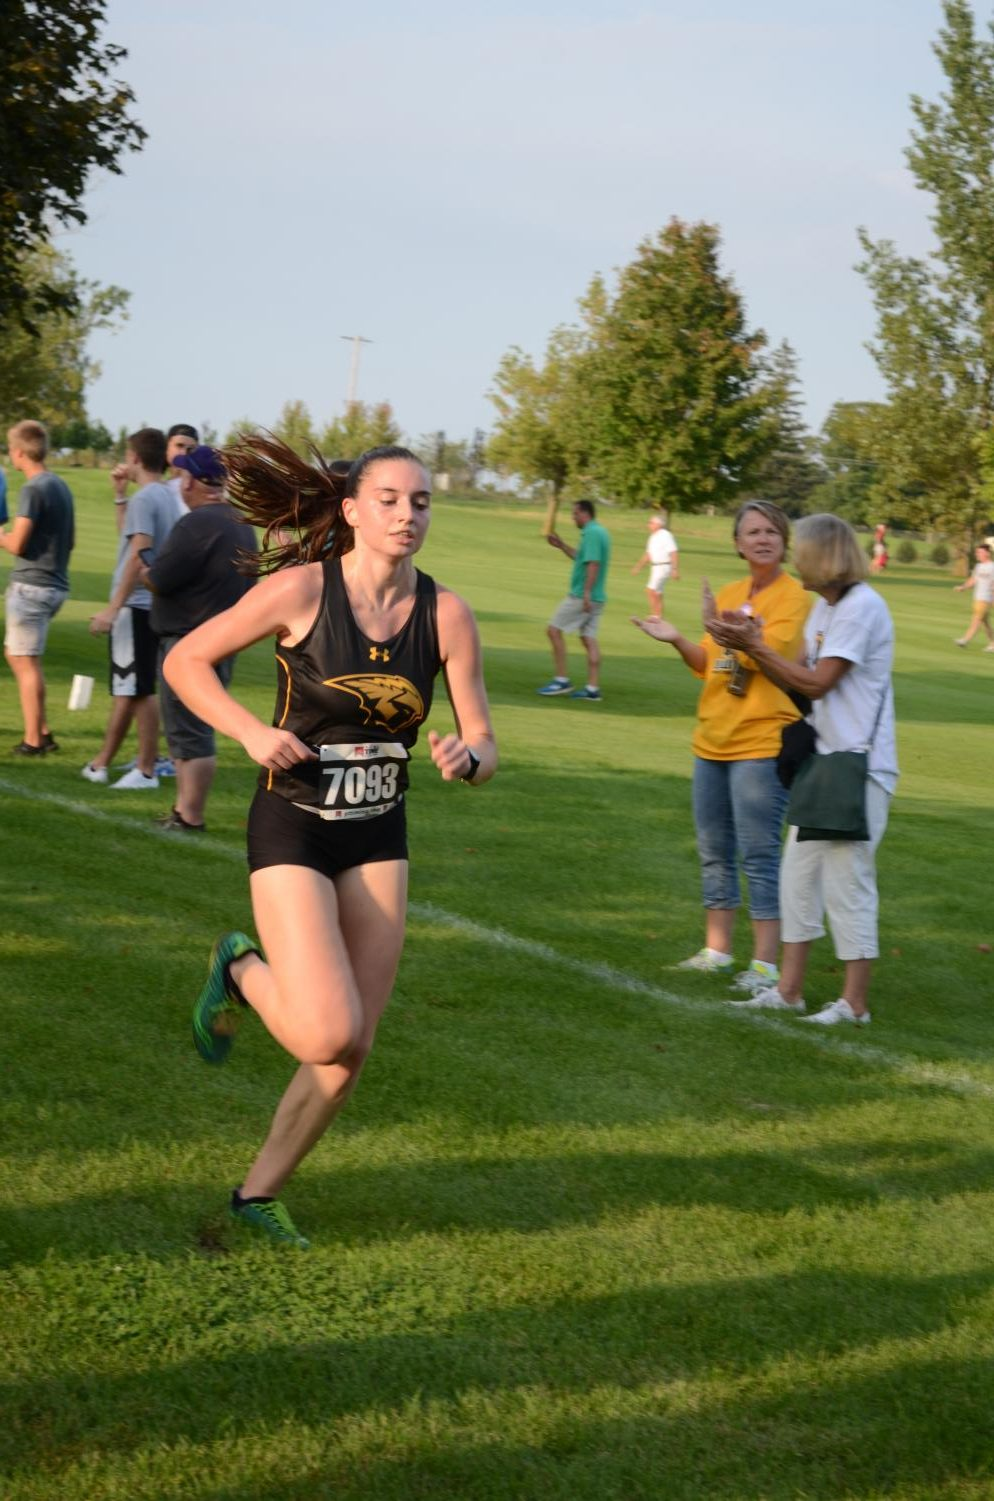 Junior Hannah Lohrenz won the women's 6K at the Titan Fall Classic with a time of 23:45.2.